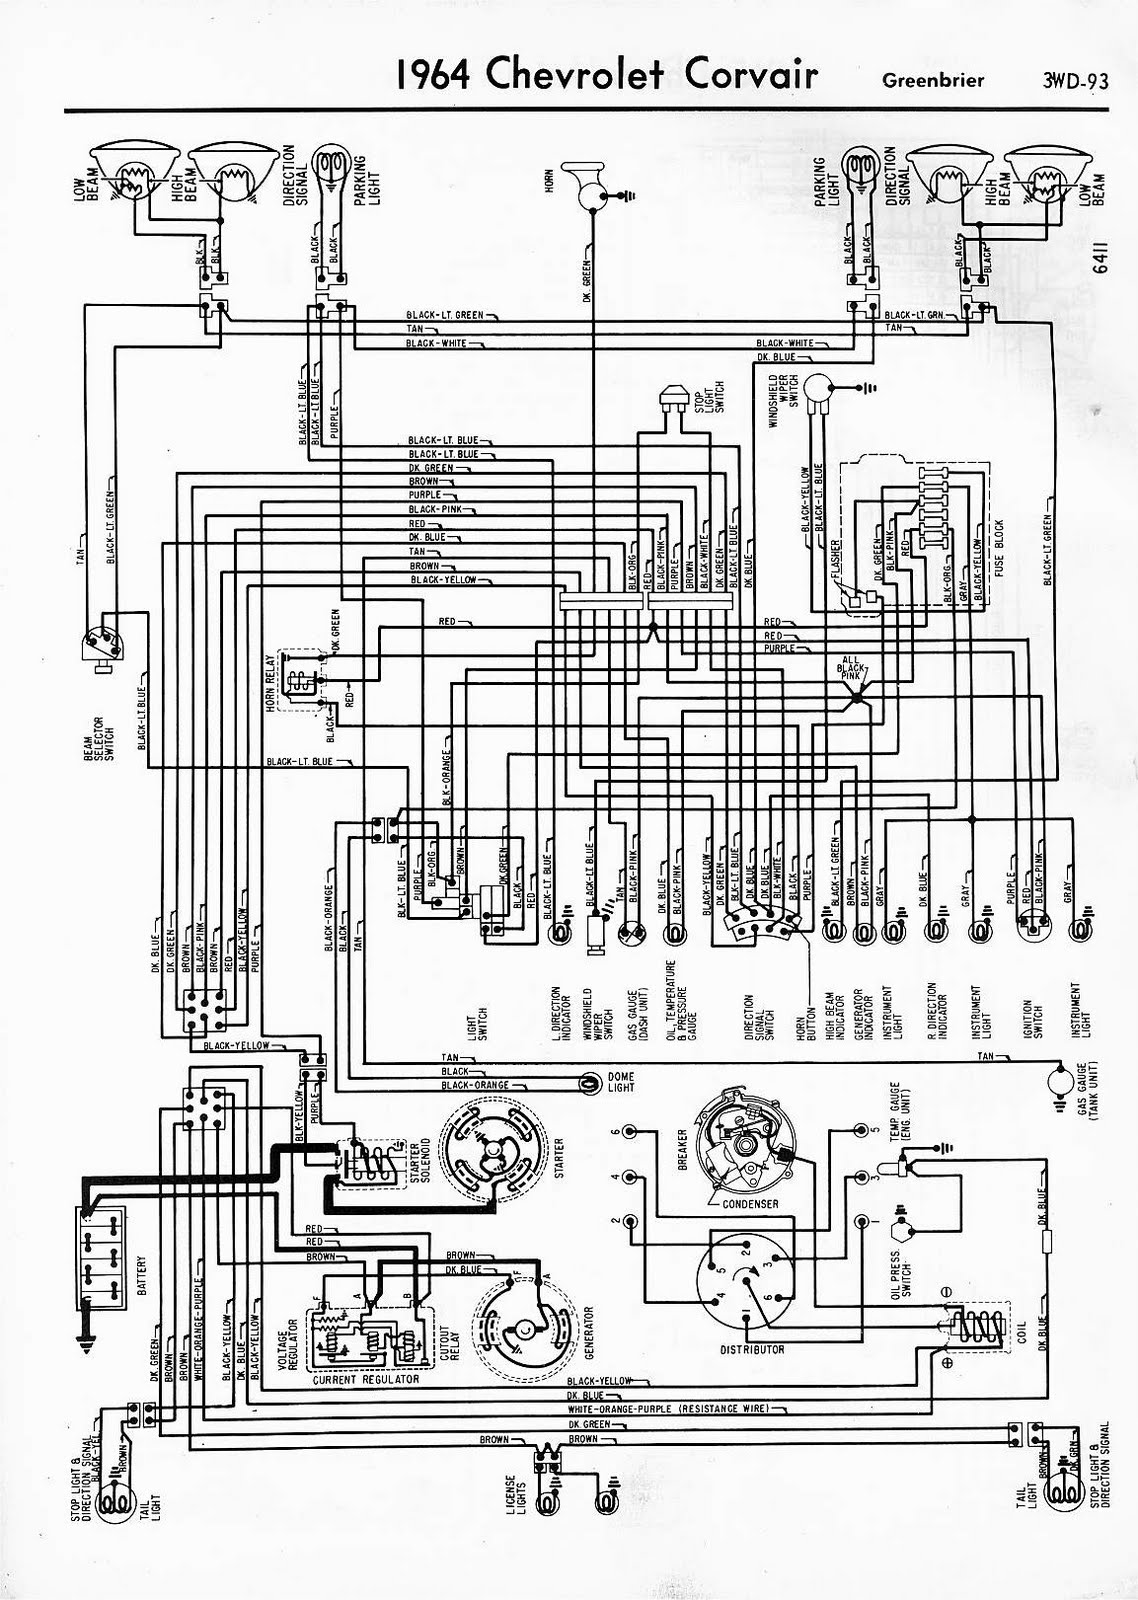 hight resolution of free auto wiring diagram 1964 chevrolet corvair 2000 f150 fuse panel diagram ford e 250